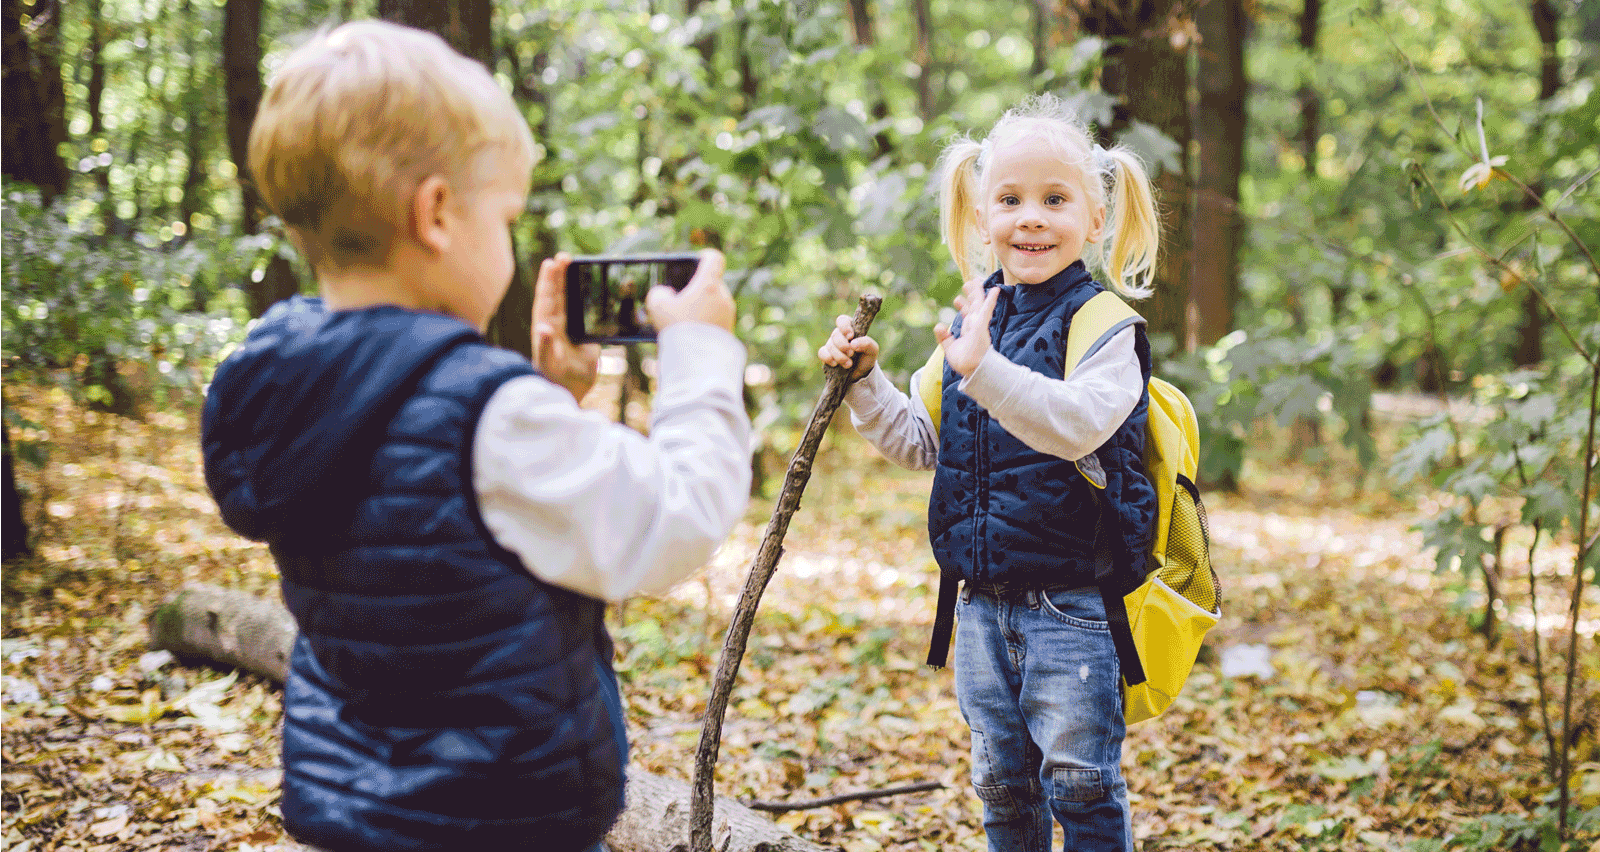 kids in woods taking picture with cell phone